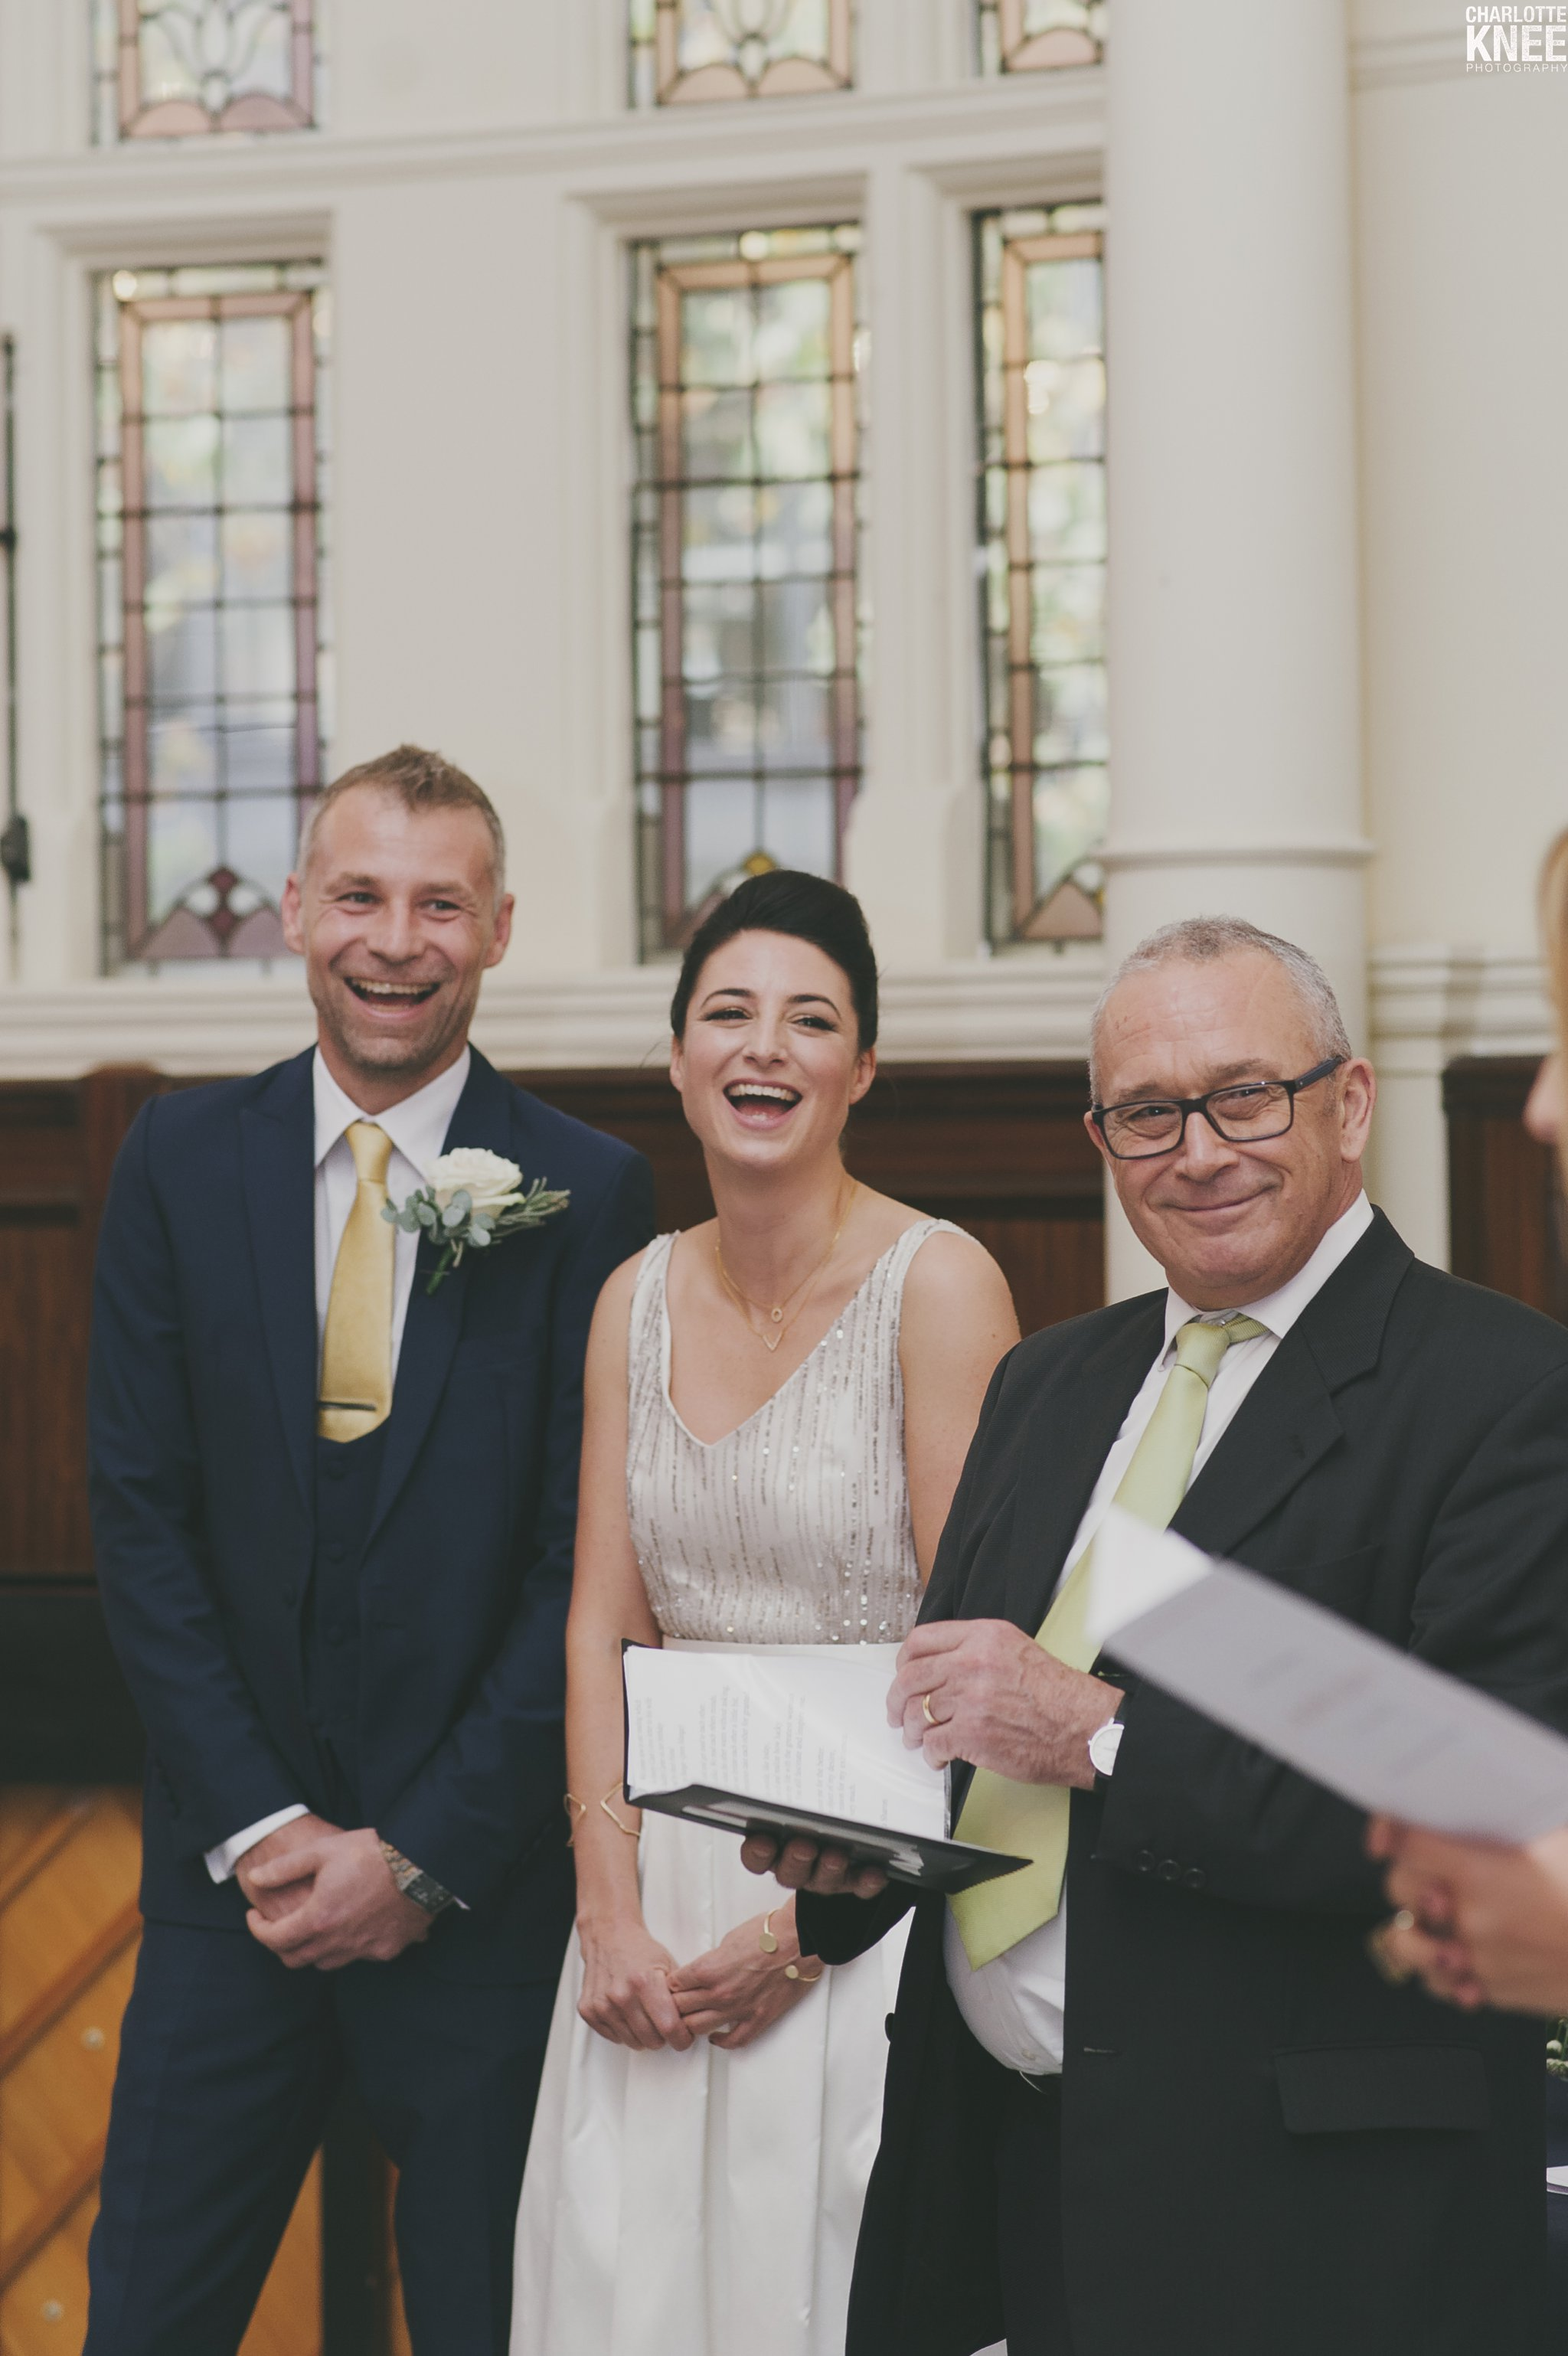 London Wedding Finsbury Town Hall Copyright Charlotte Knee Photography_0072.jpg